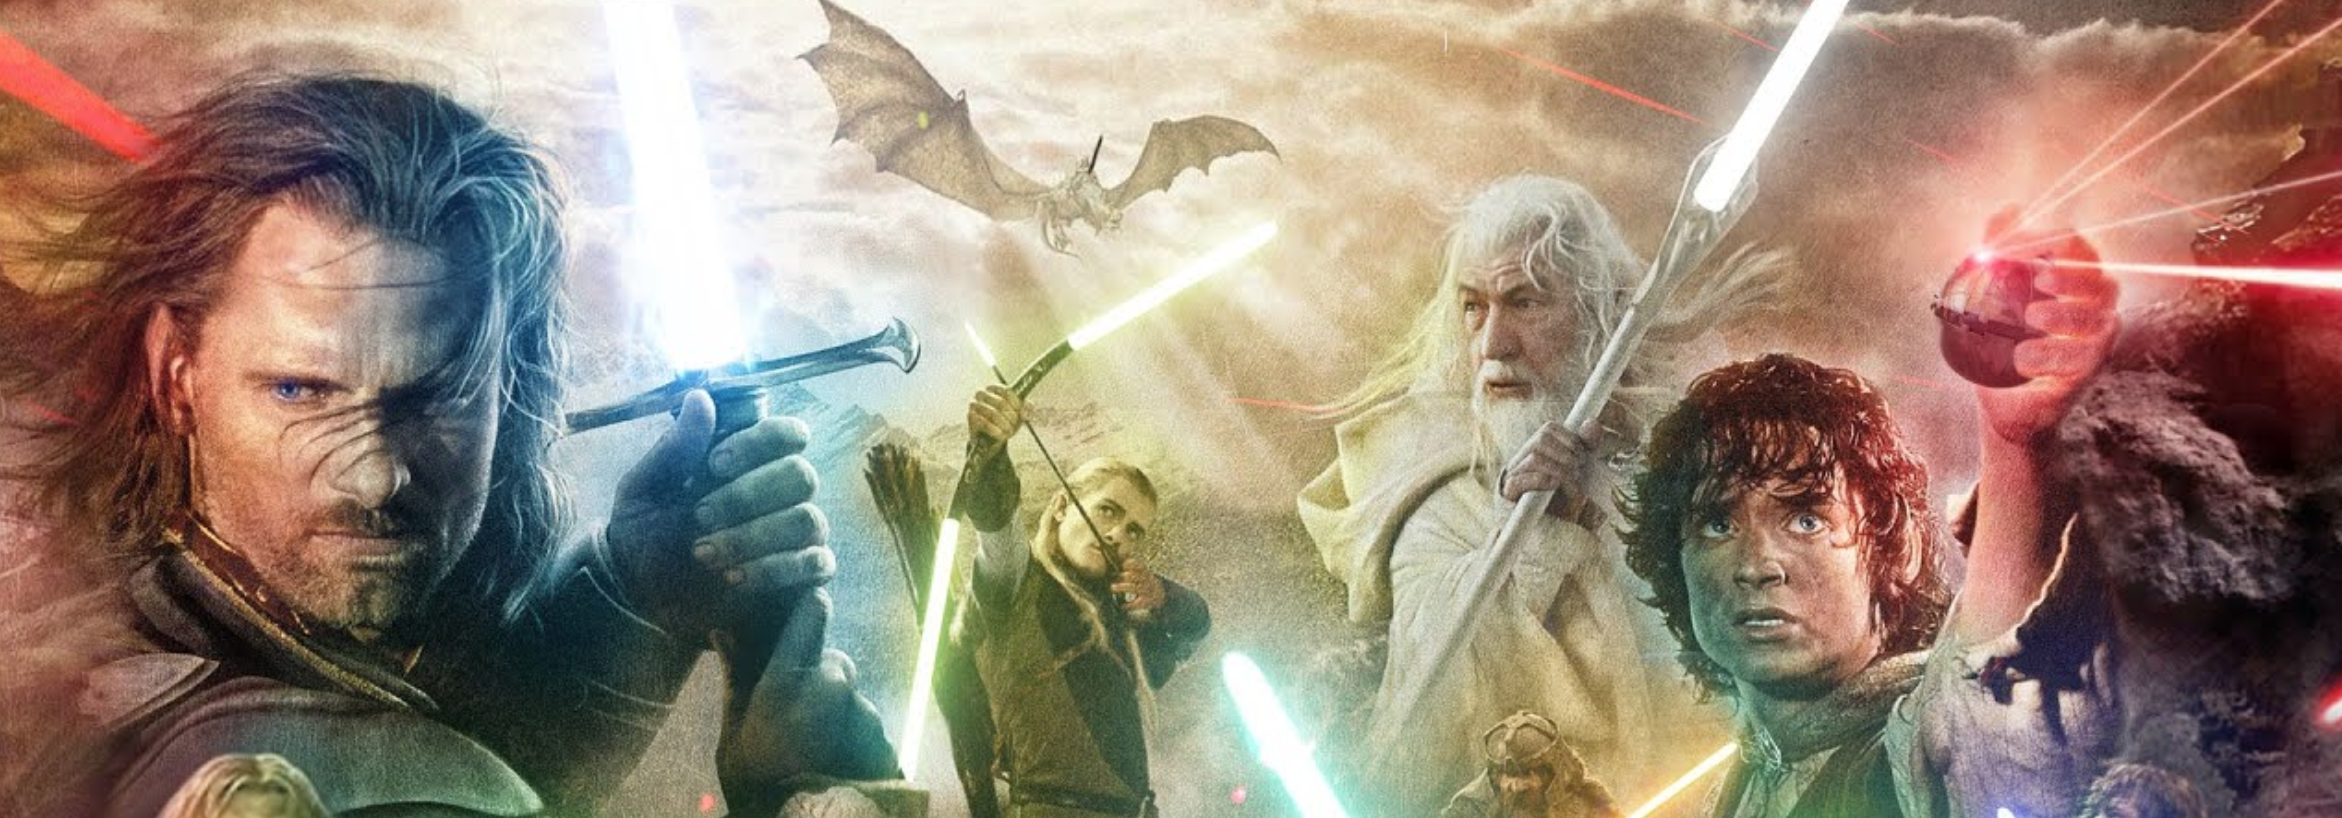 This VFX Crew Remade The Lord Of The Rings With Lightsabers